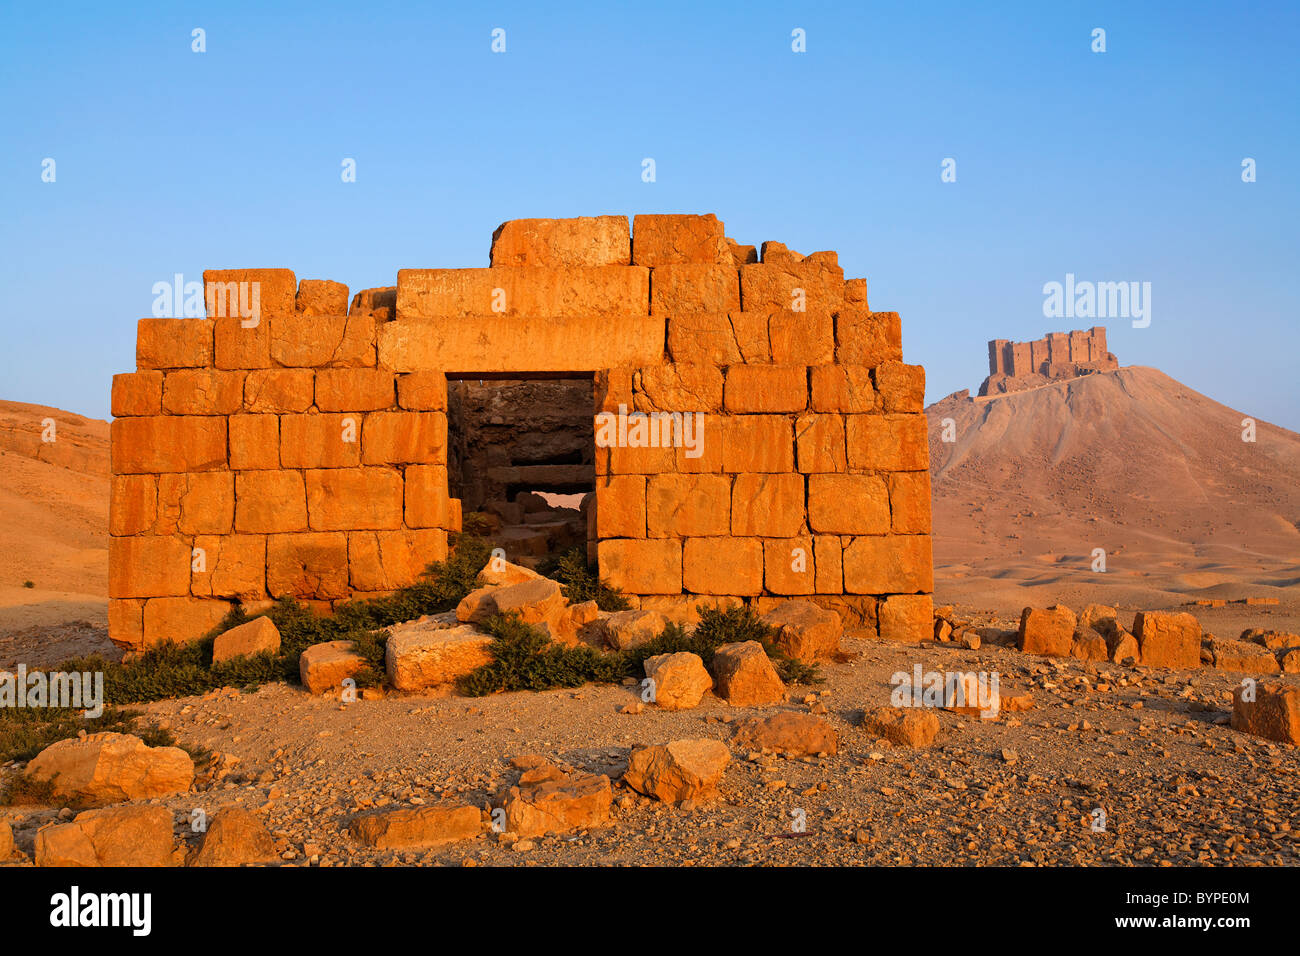 Tower tomb and the Arab Castle at Palmyra, Syria - Stock Image